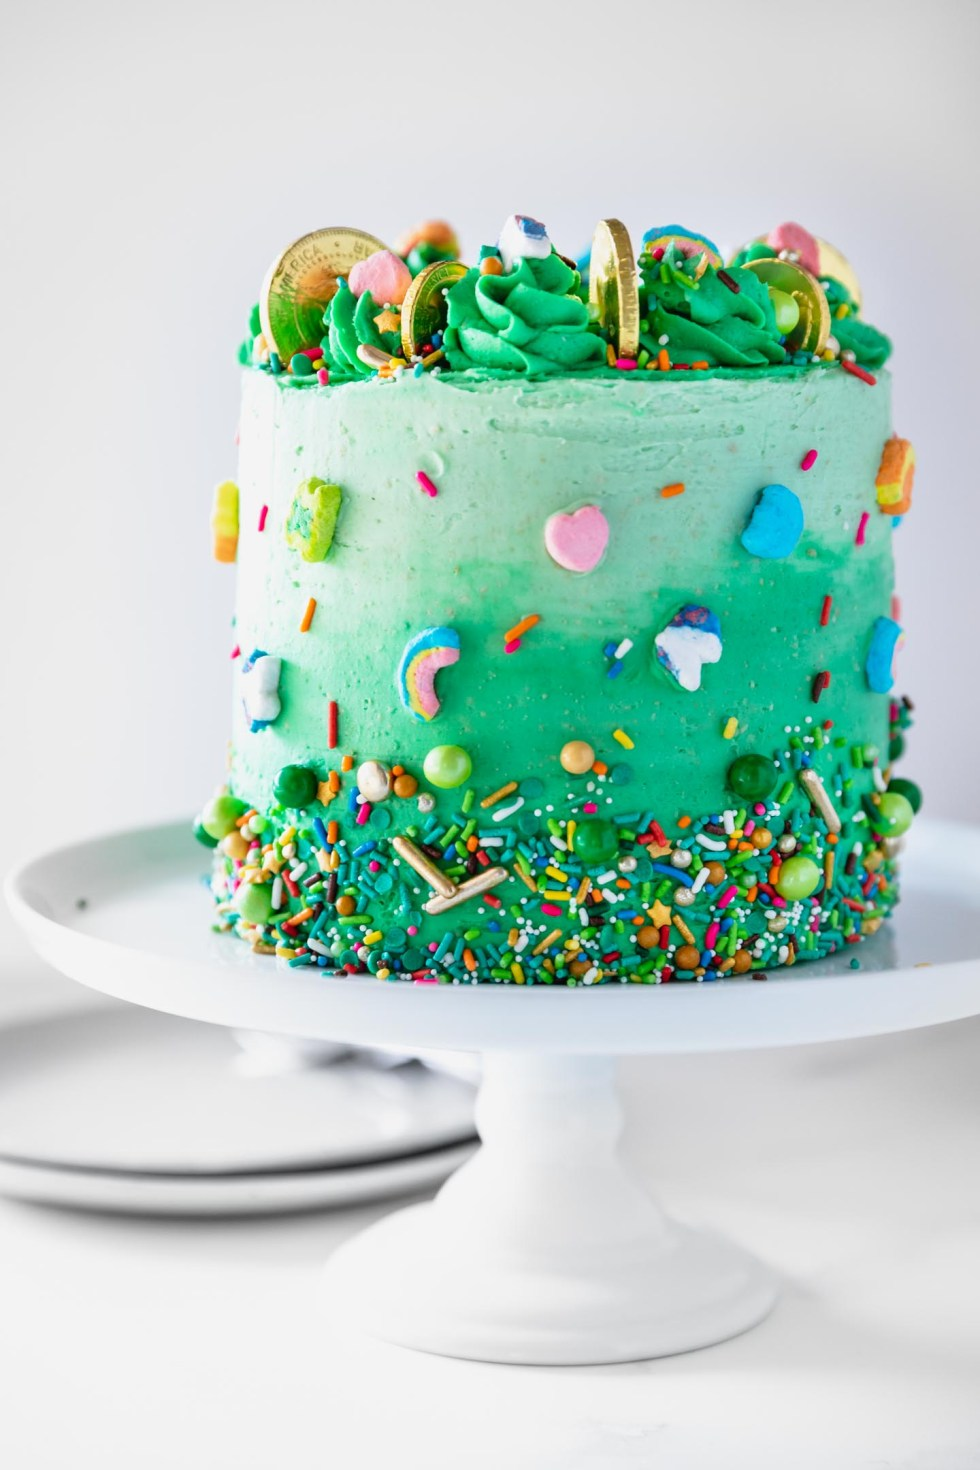 Front view of a green ombre cake with rainbow sprinkles and gold coins on top.